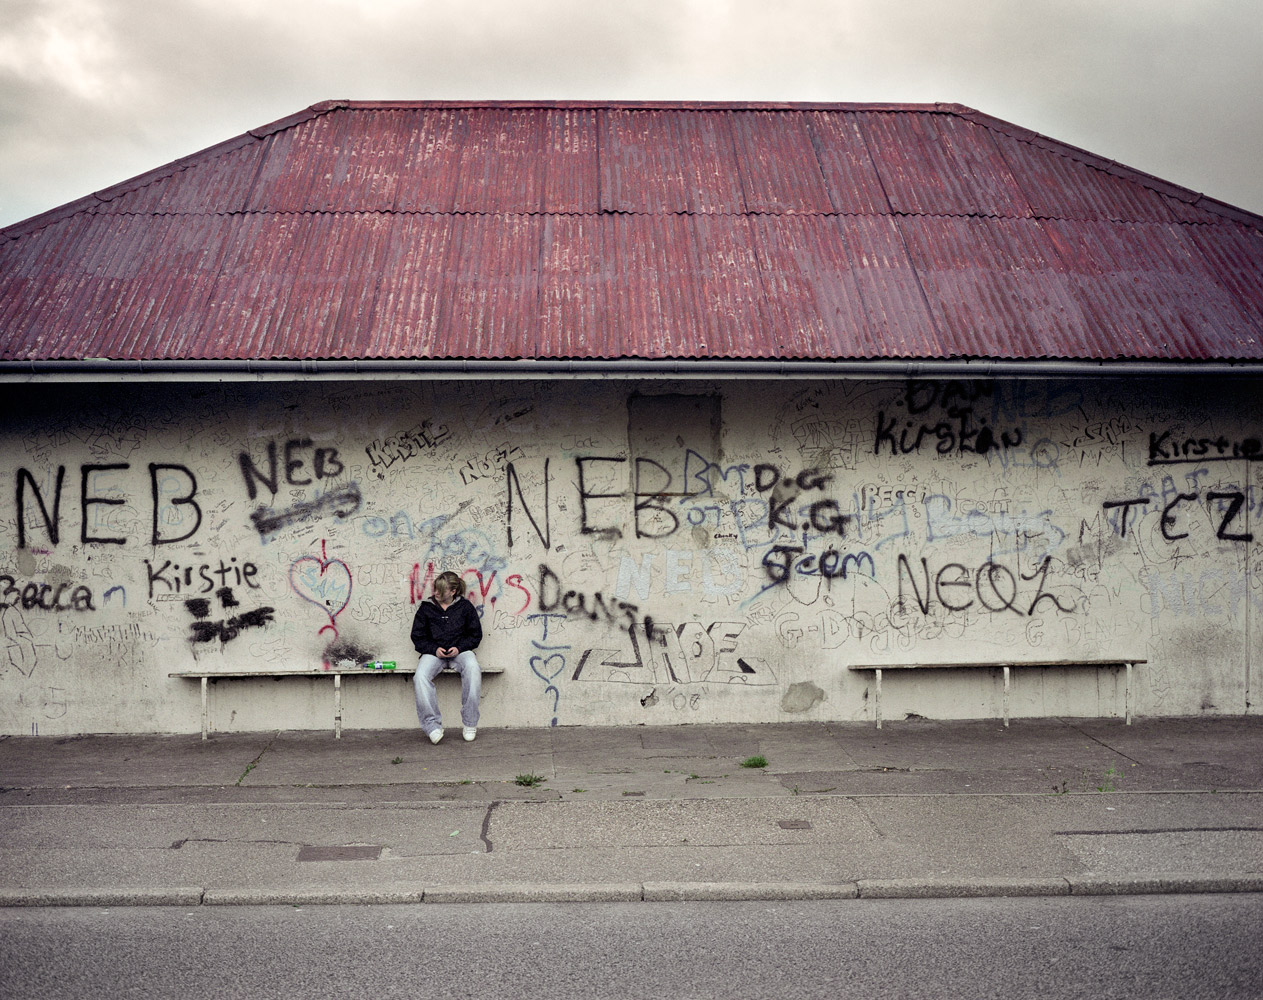 A teenage girl waits for her friends on the streets of Elgin. With a population of 21,000 and it's situation on a main arterial road, Elgin is big enough to experience some of the social issues associated with larger urban areas, while still being situated in predominantly rural region. 2007.